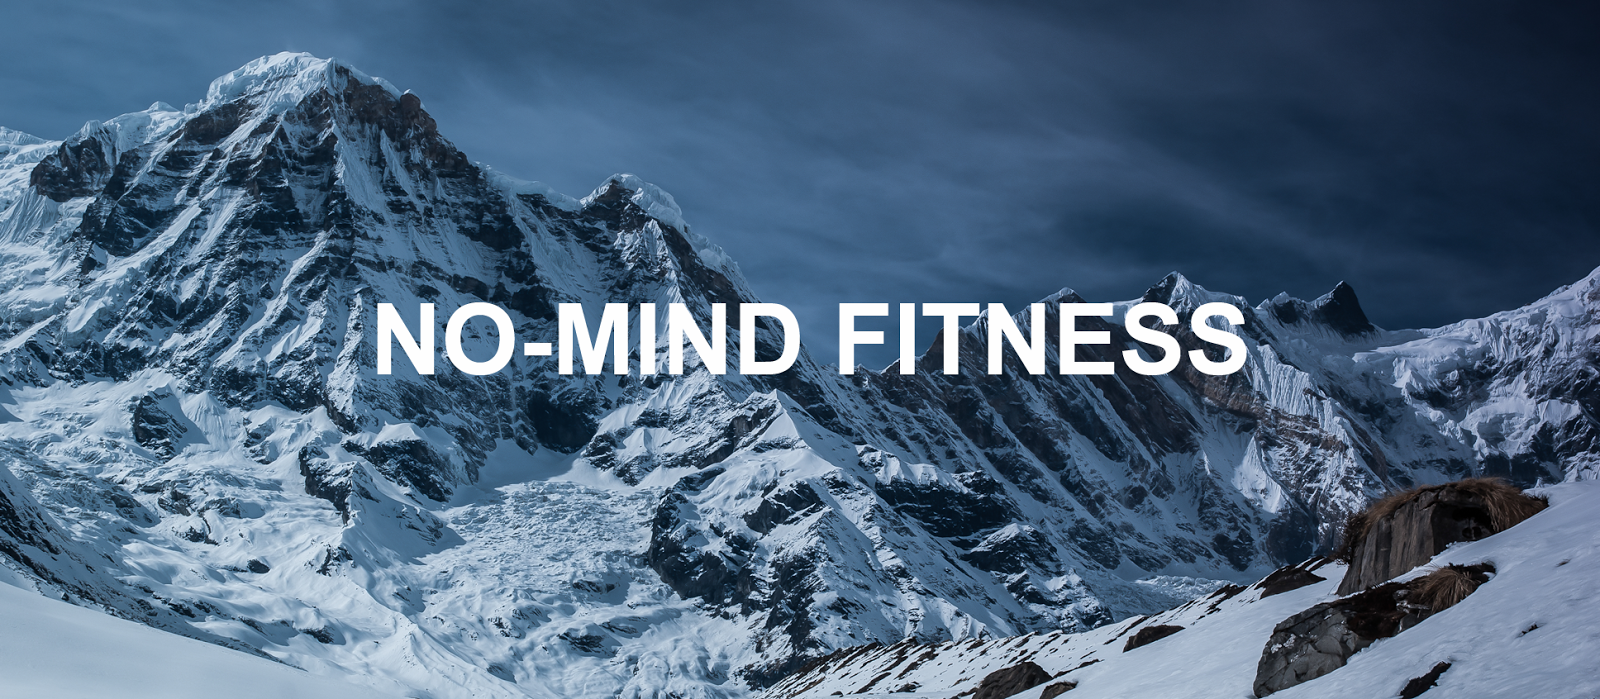 NO-MIND FITNESS